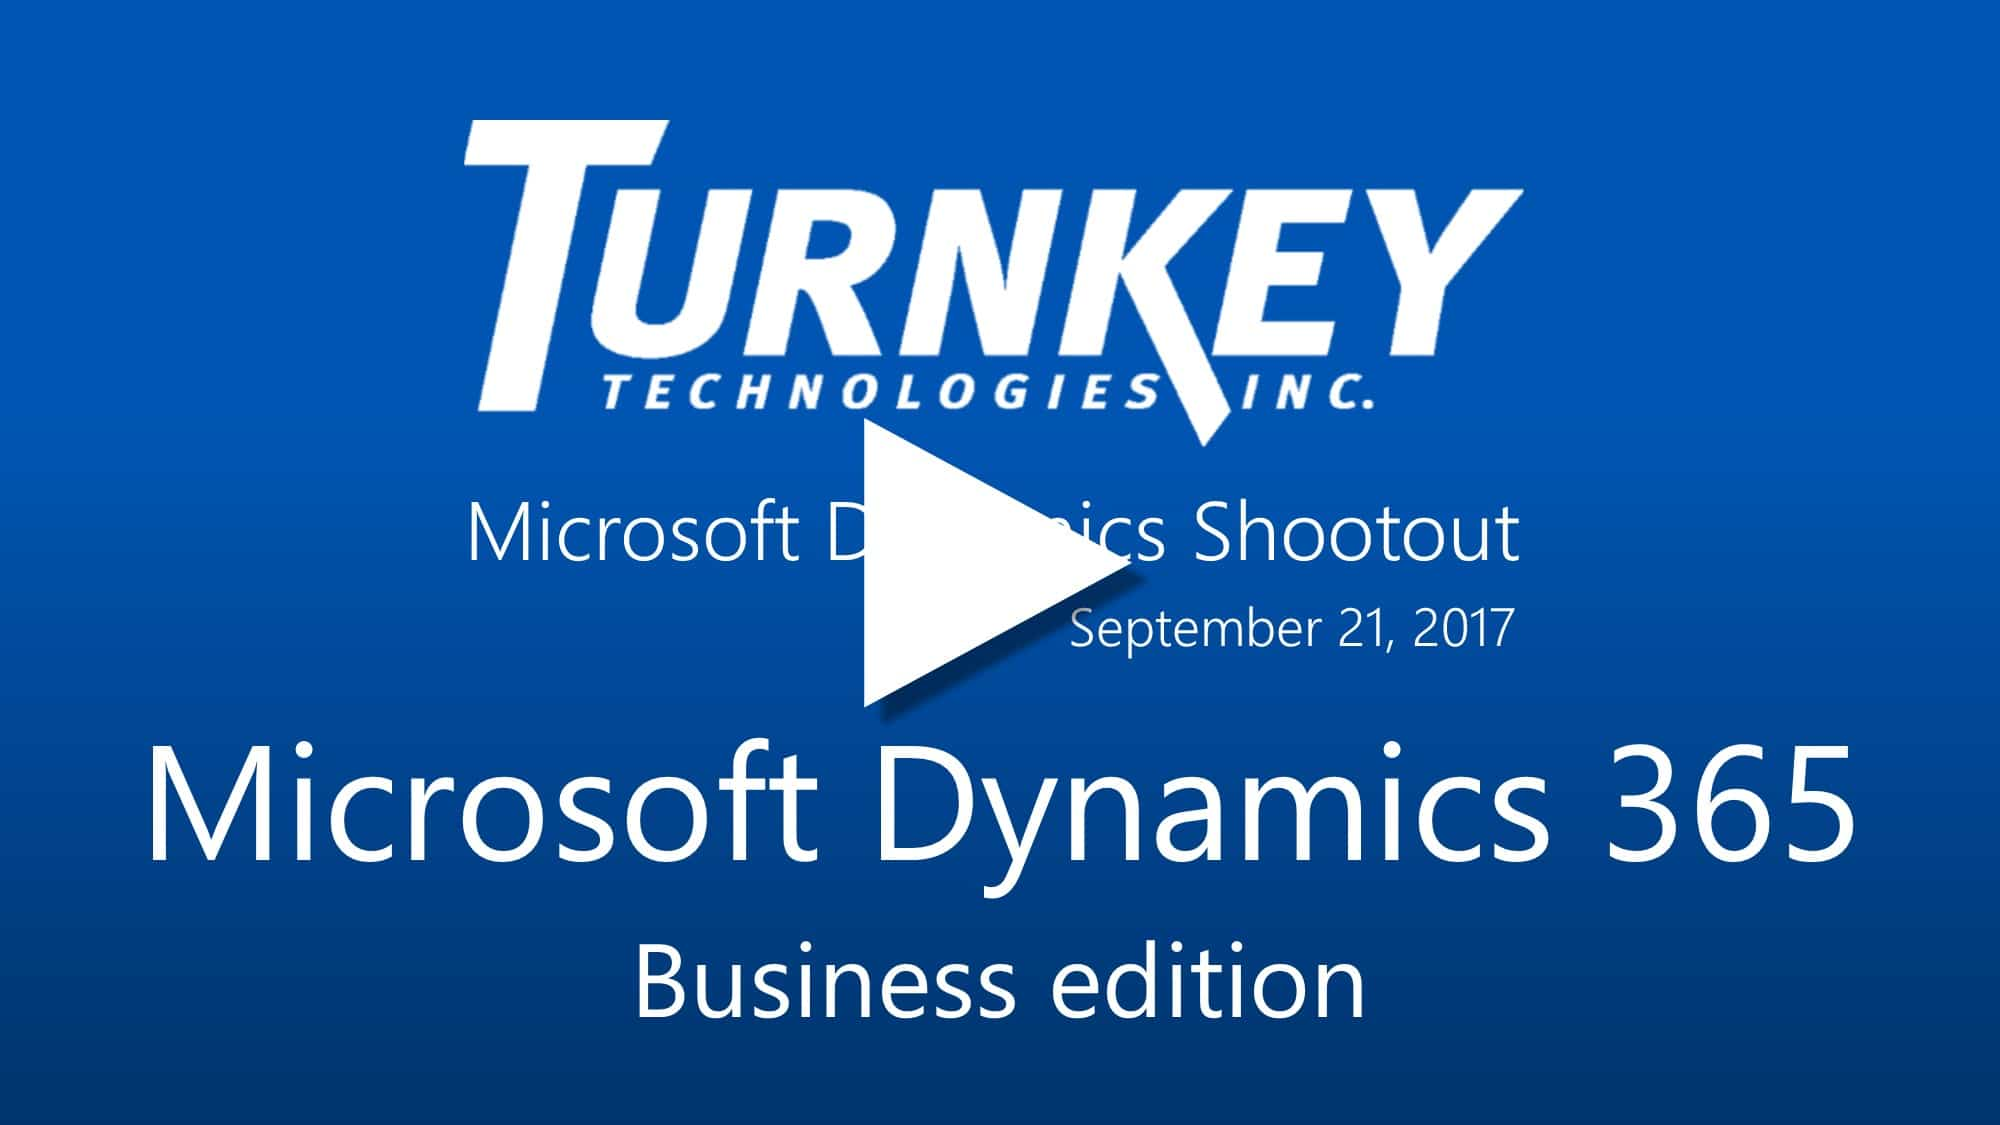 Compare Microsoft Dynamics Business Solutions - Dynamics 365 Business edition